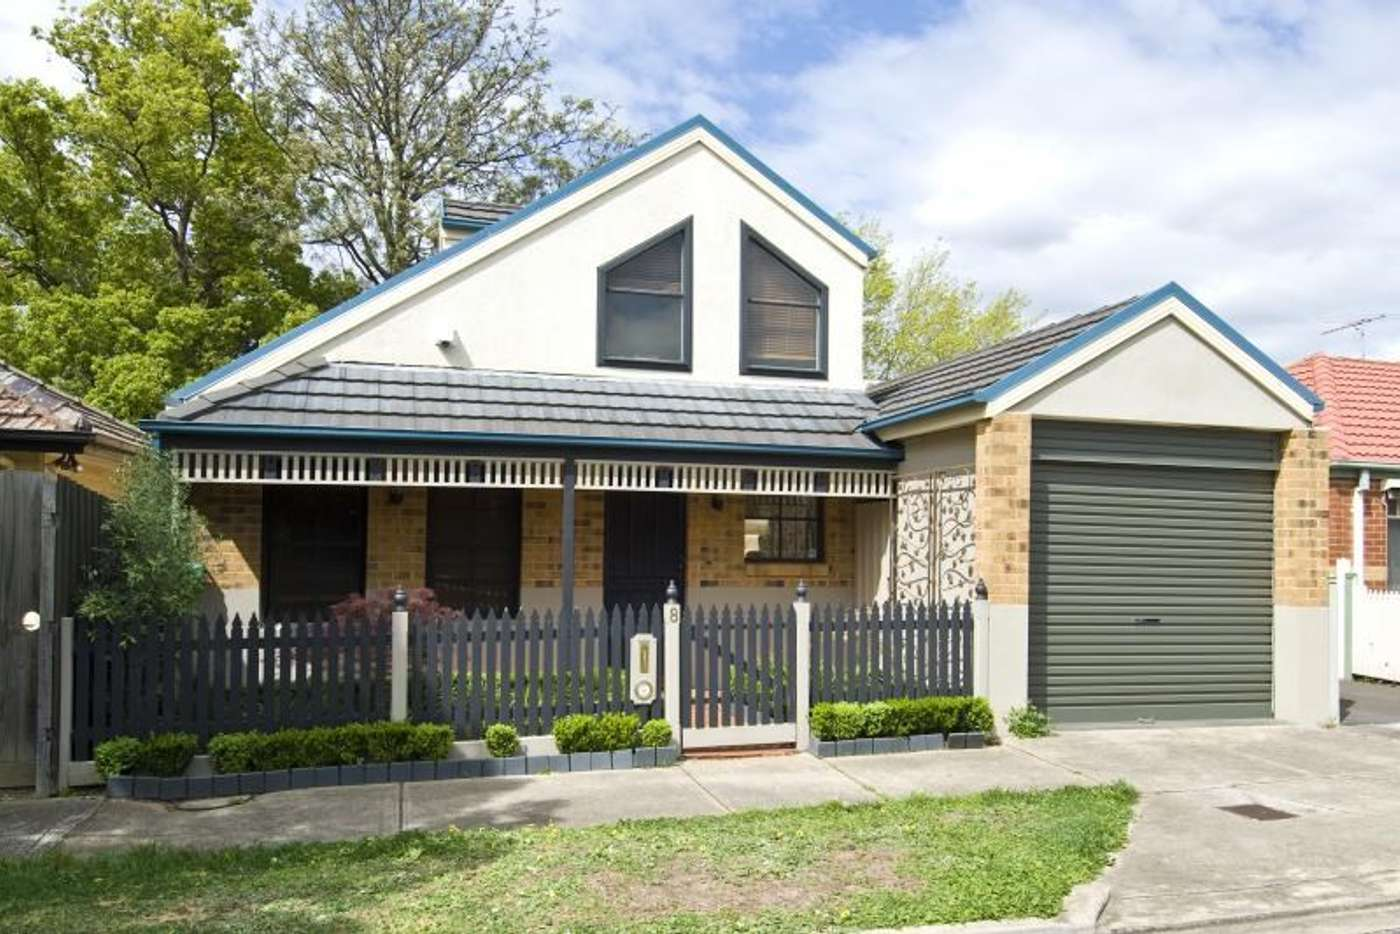 Main view of Homely house listing, 8 Probus Street, Ivanhoe VIC 3079